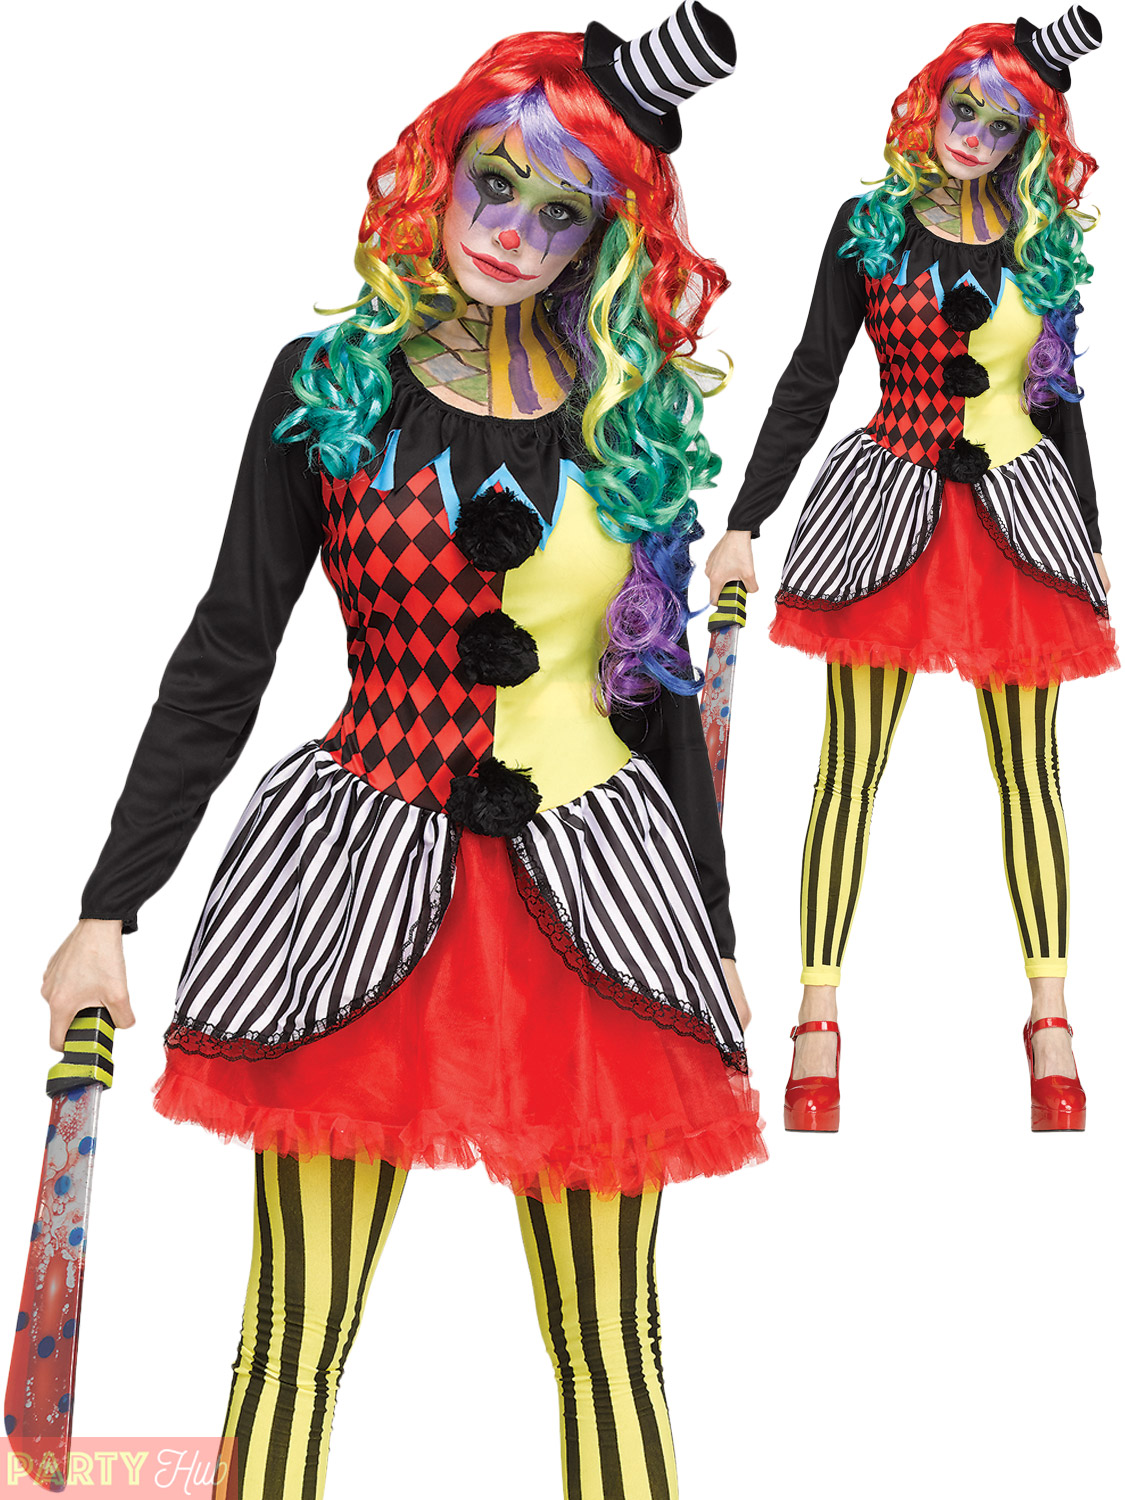 ladies freakshow clown costume adults halloween fancy dress horror circus outfit ebay. Black Bedroom Furniture Sets. Home Design Ideas